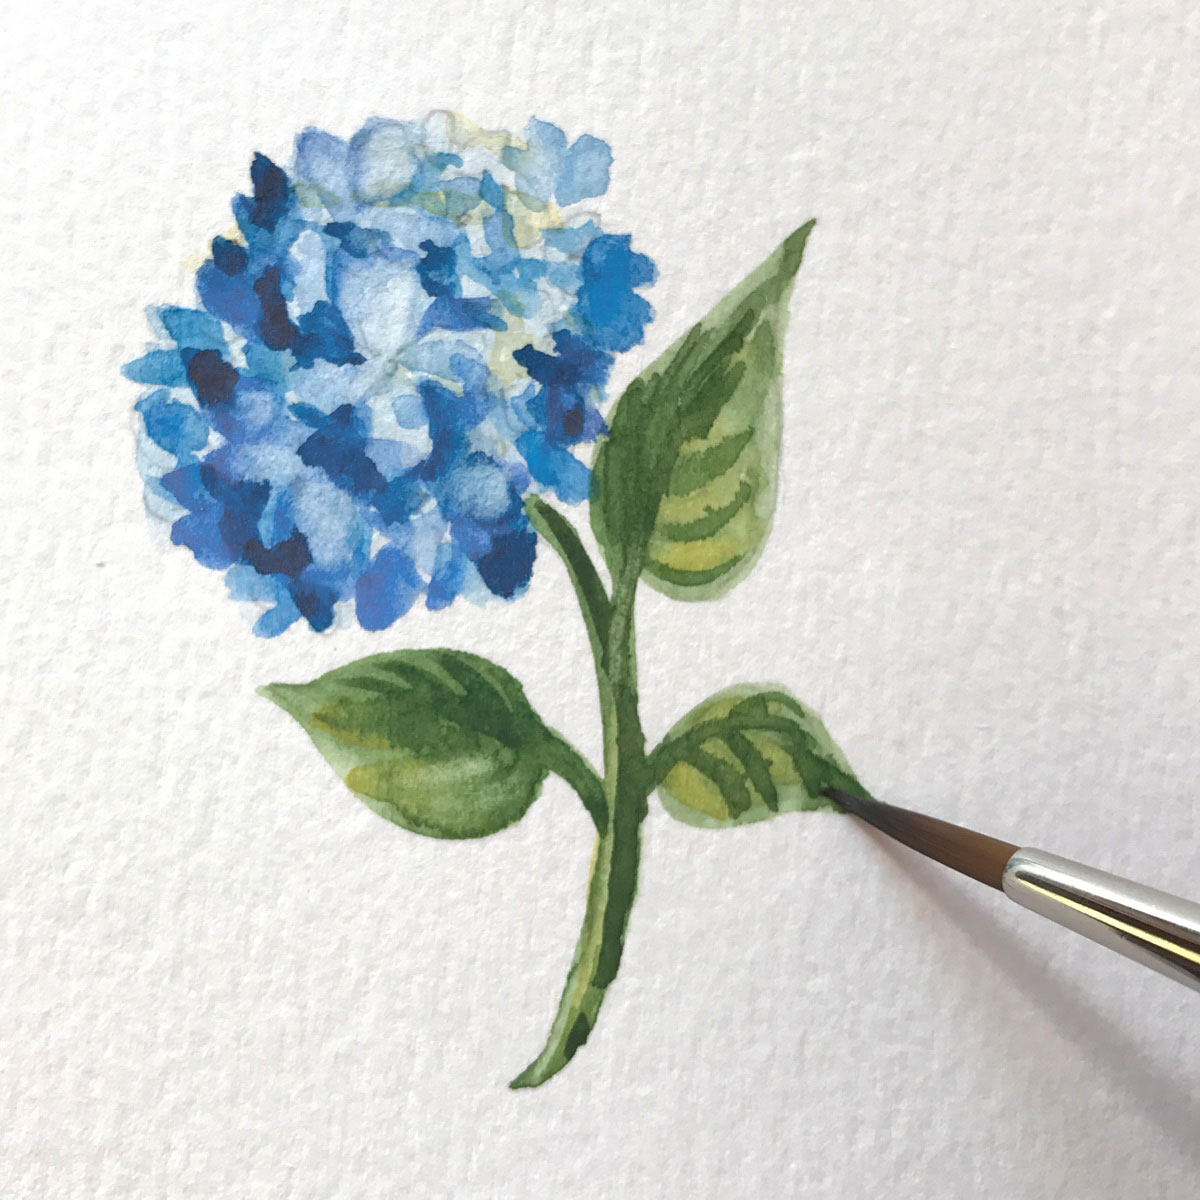 It's all in the details. Blue hydrangea stem painted by Michelle Mospens (   Mospens Studio   ) for our reply card motif.